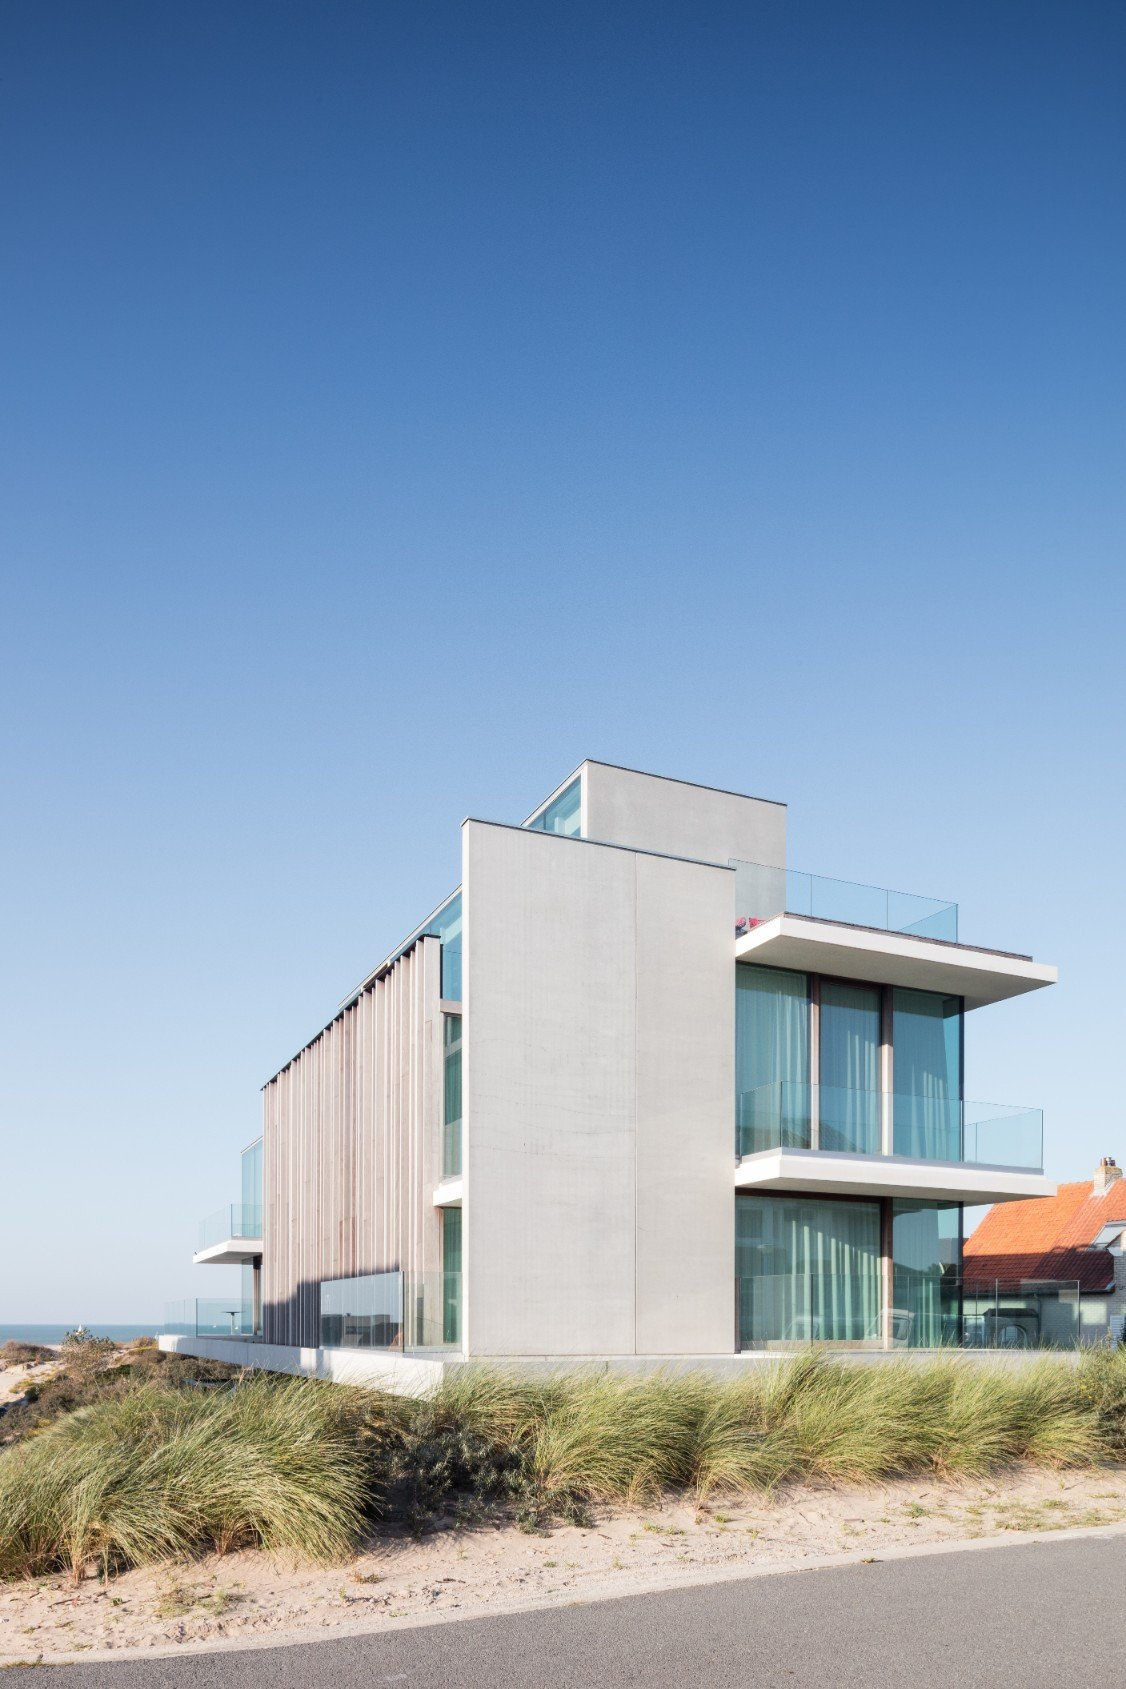 Rietveldprojects-Residence-ON-appartement-design-architectuur-kust-tvdv4